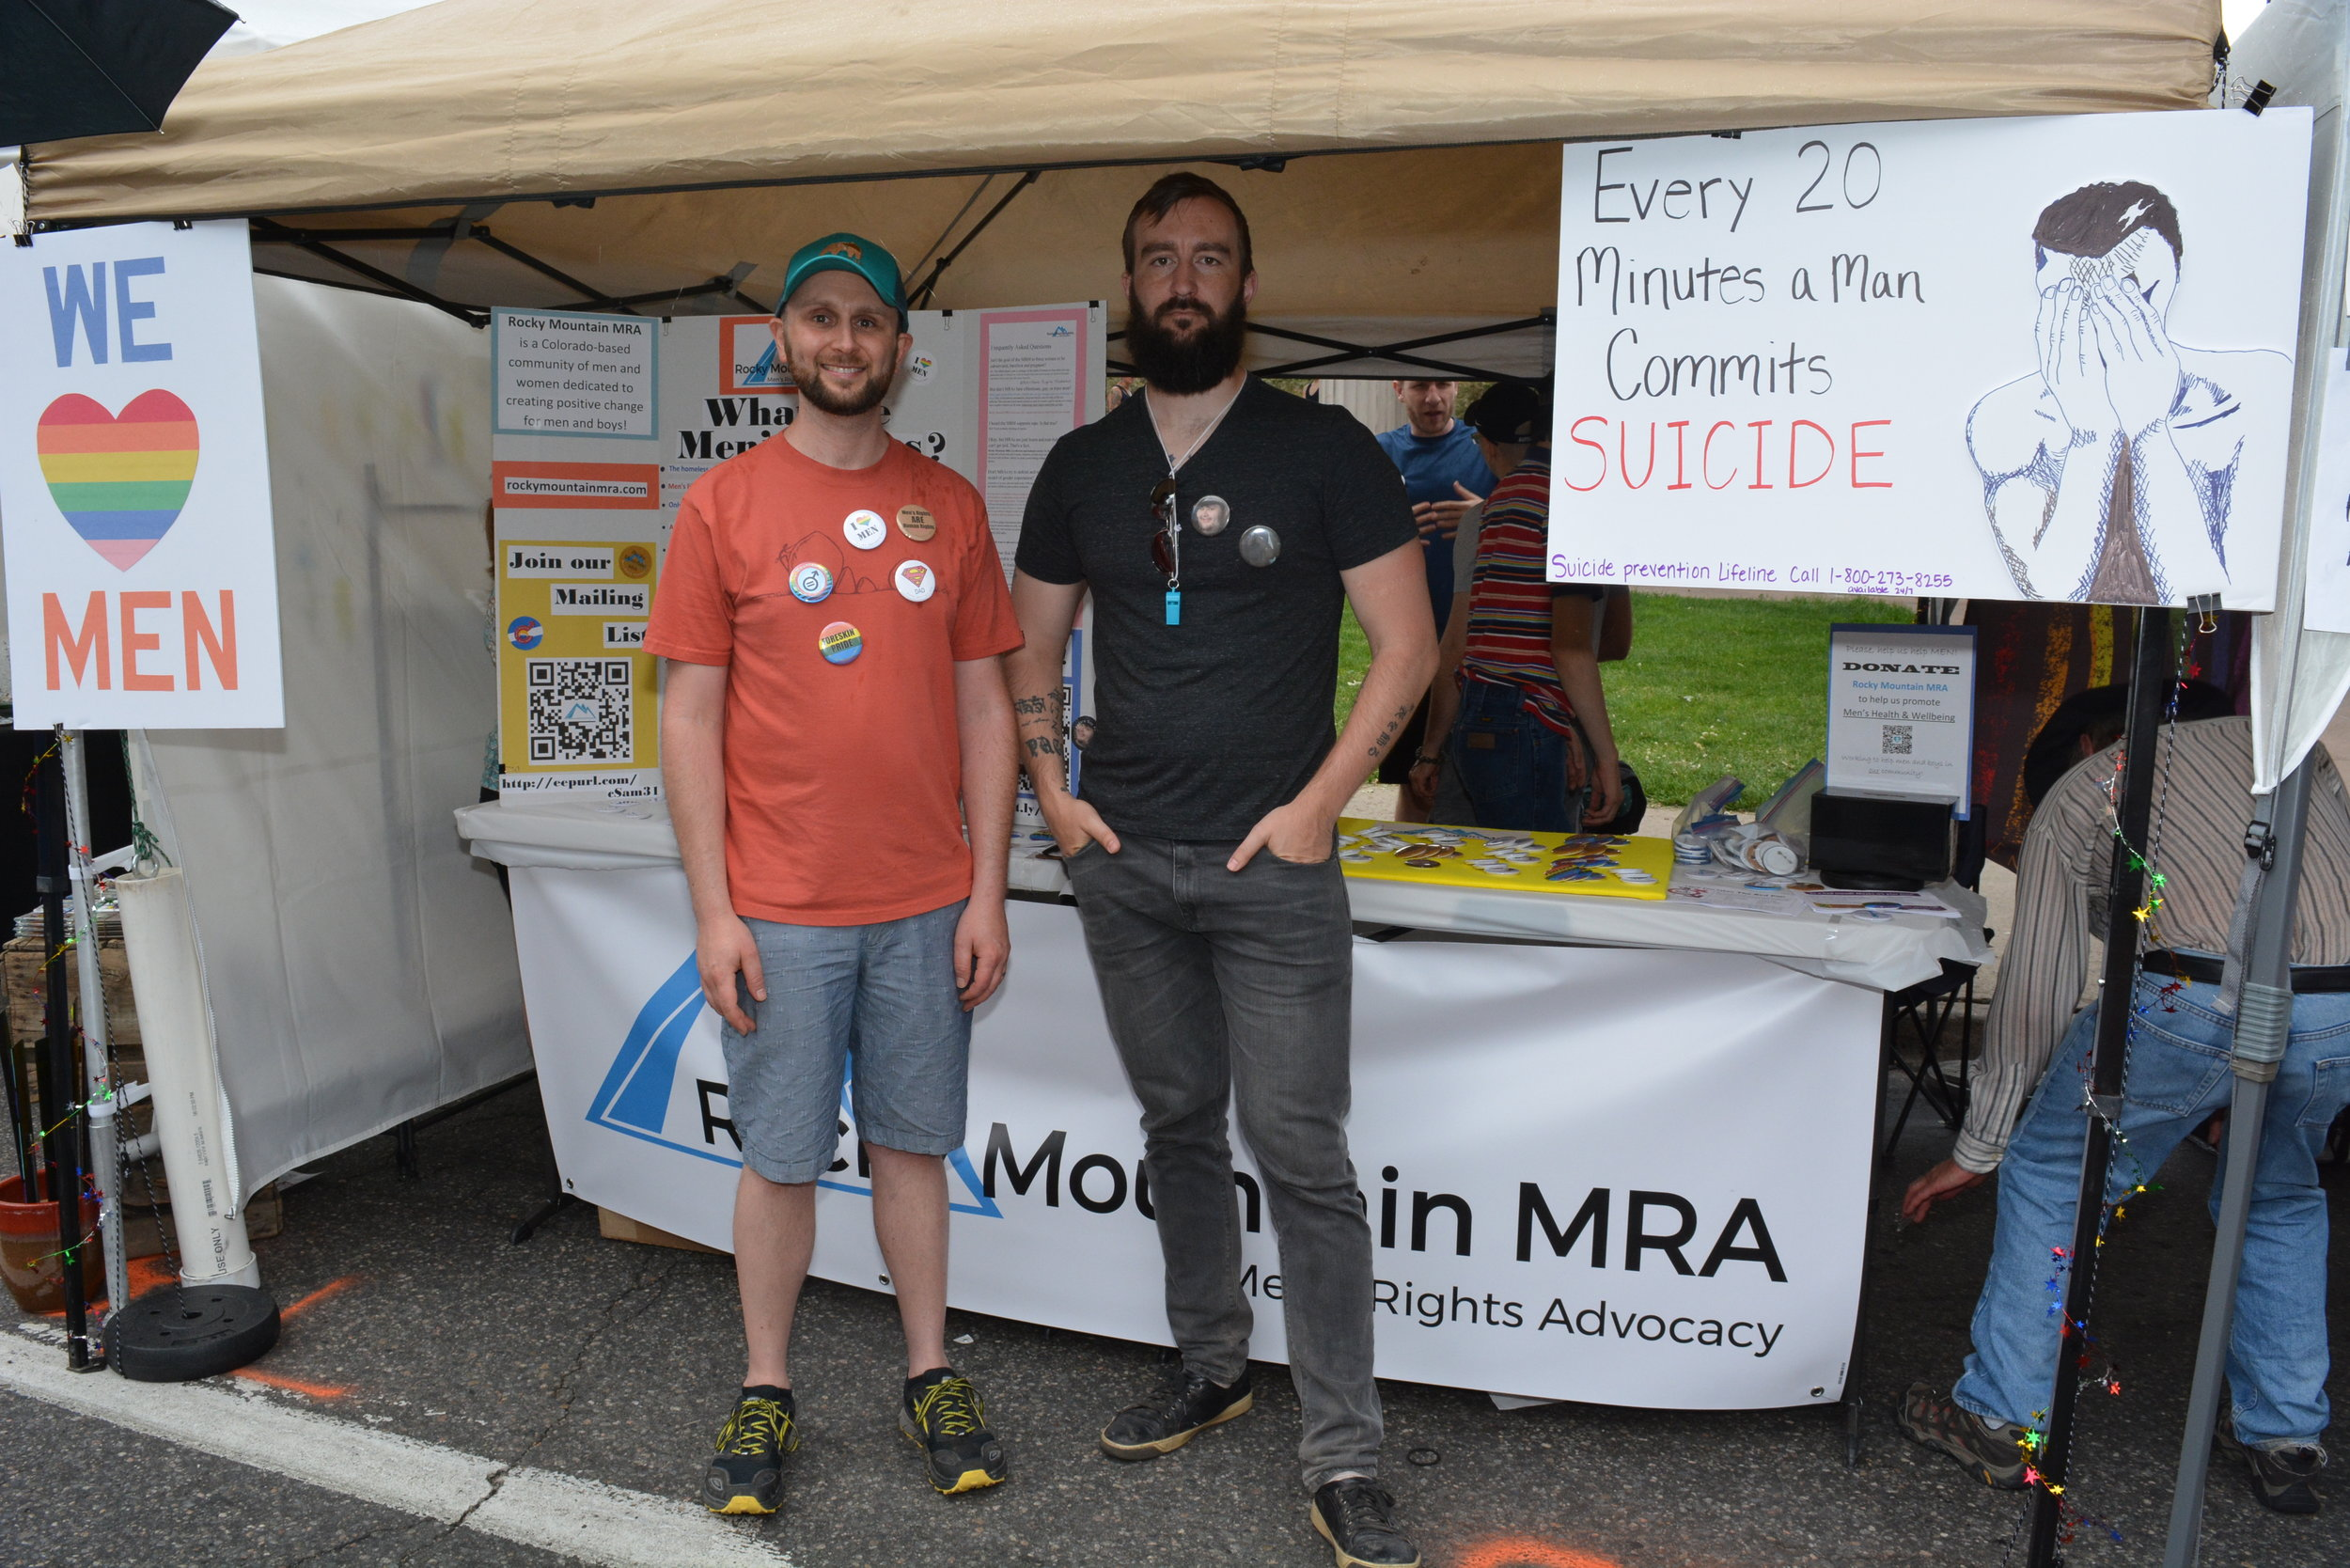 Co-founders of Rocky Mountain MRA, Aaron and Bryan.